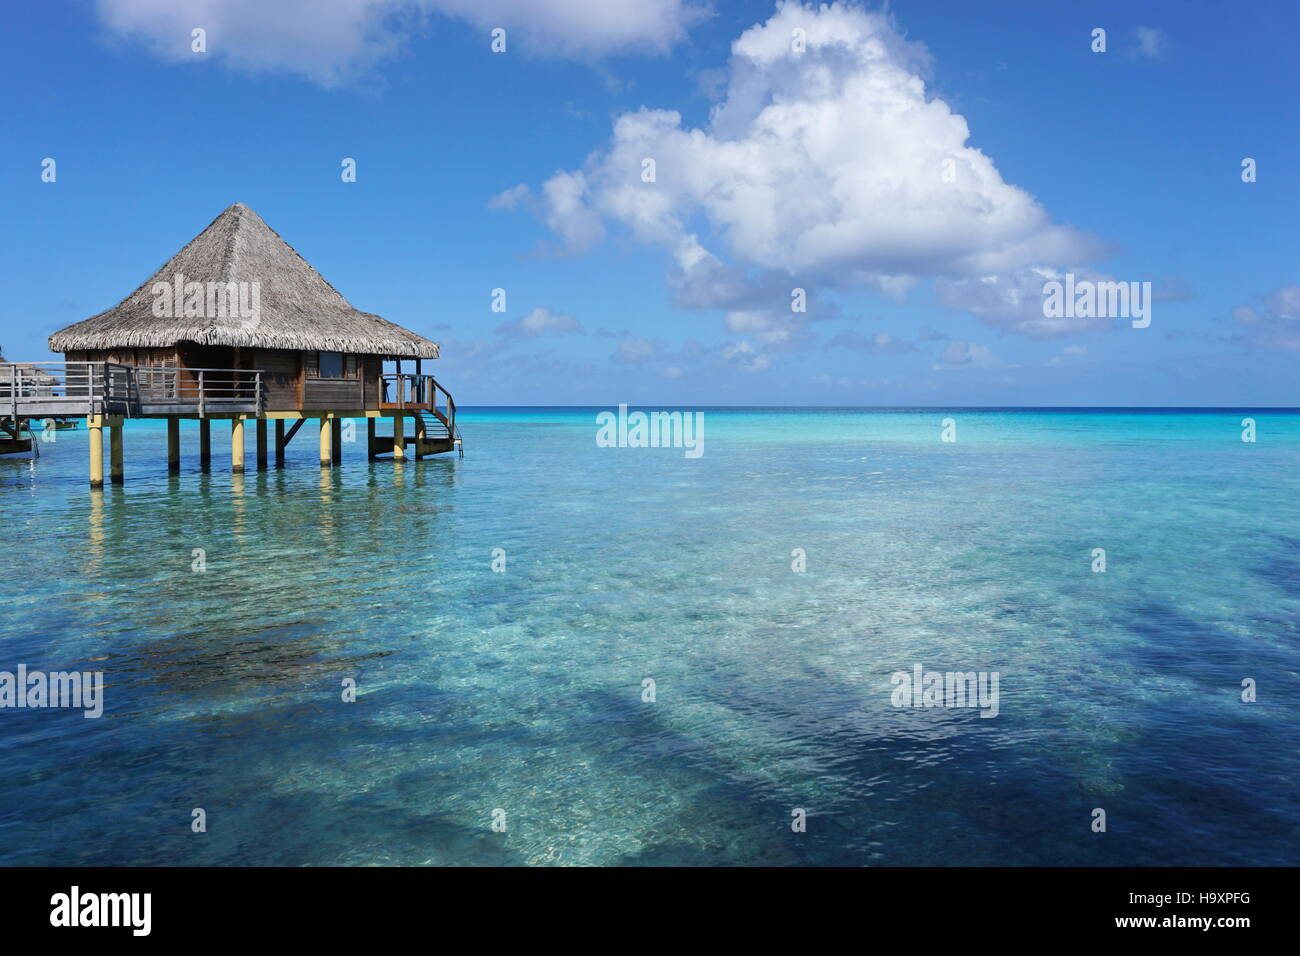 Seascape with overwater bungalow in the lagoon of Rangiroa, south Pacific ocean, Tuamotu, French Polynesia - Stock Image